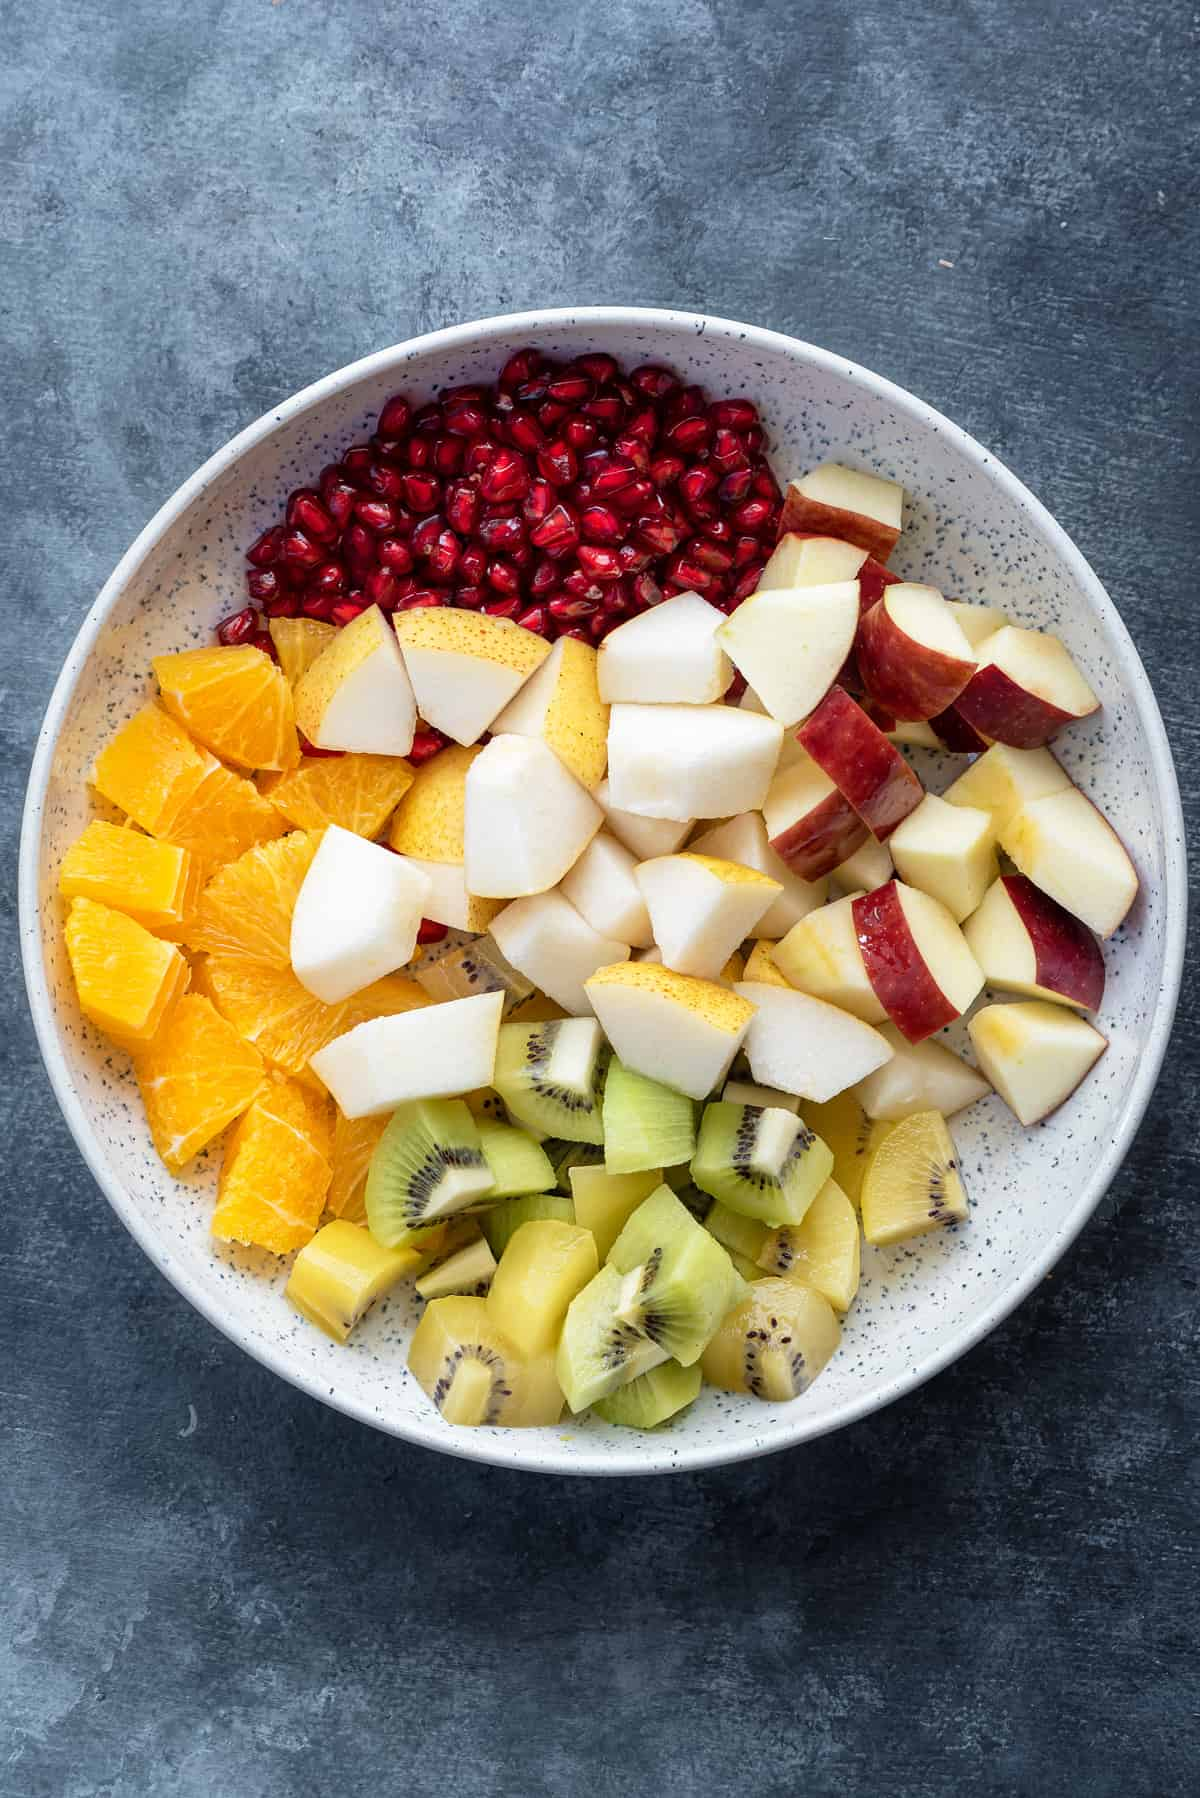 pomegranate arils, orange, pear, apple and kiwi cubes in a white speckled serving bowl